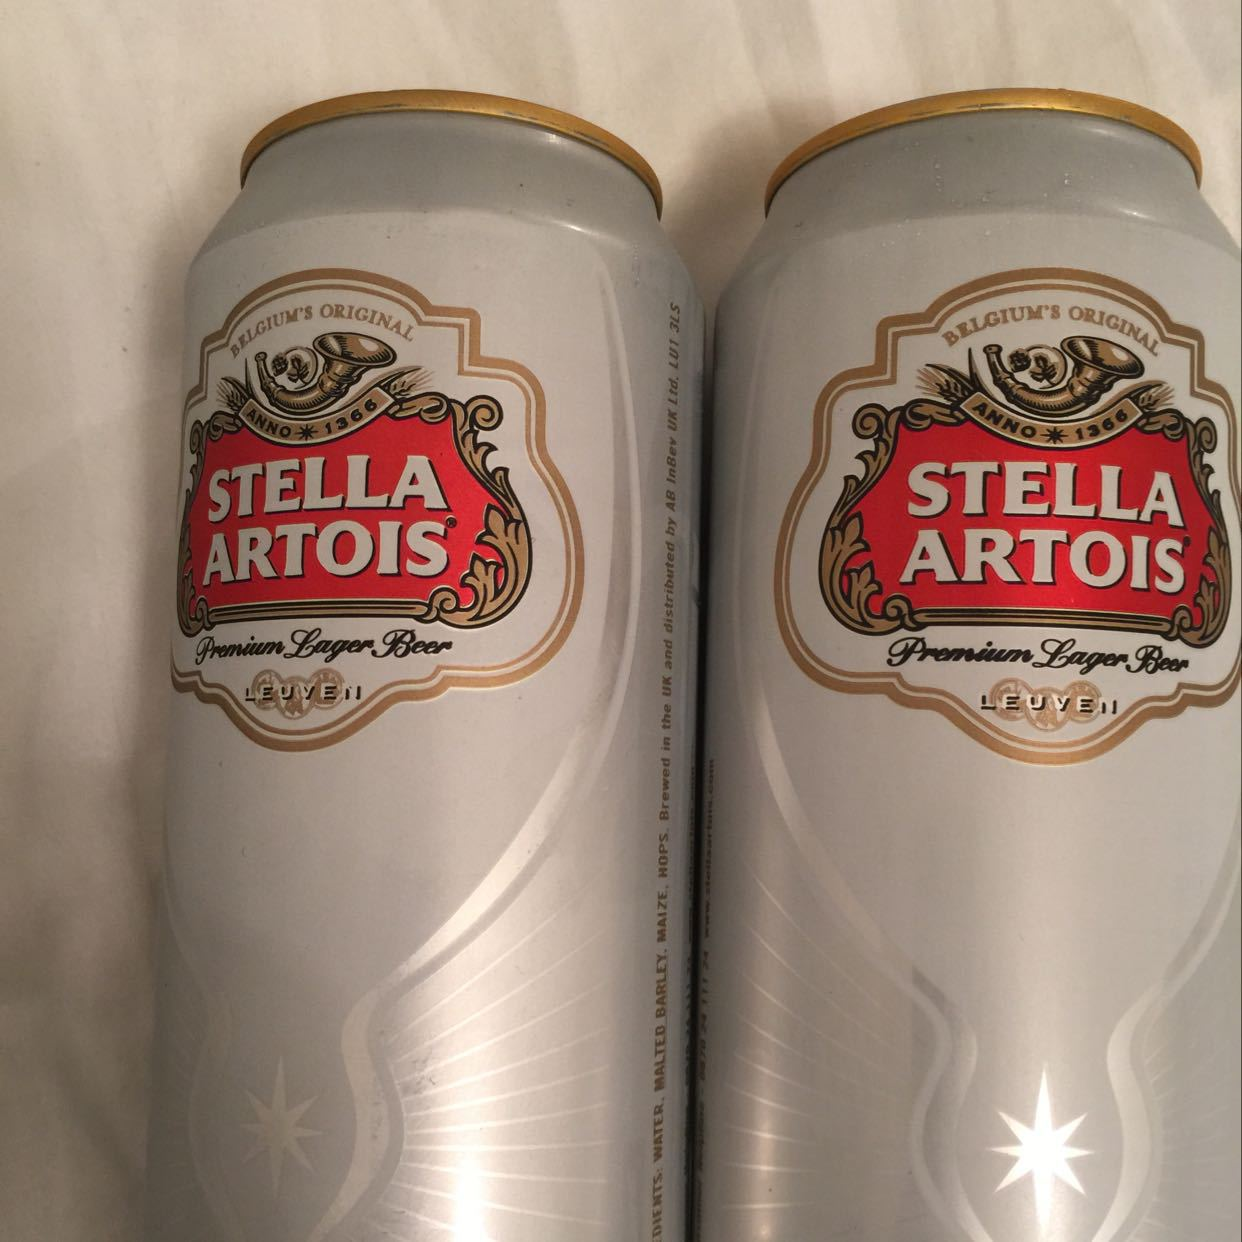 2 cans Stella 440ml